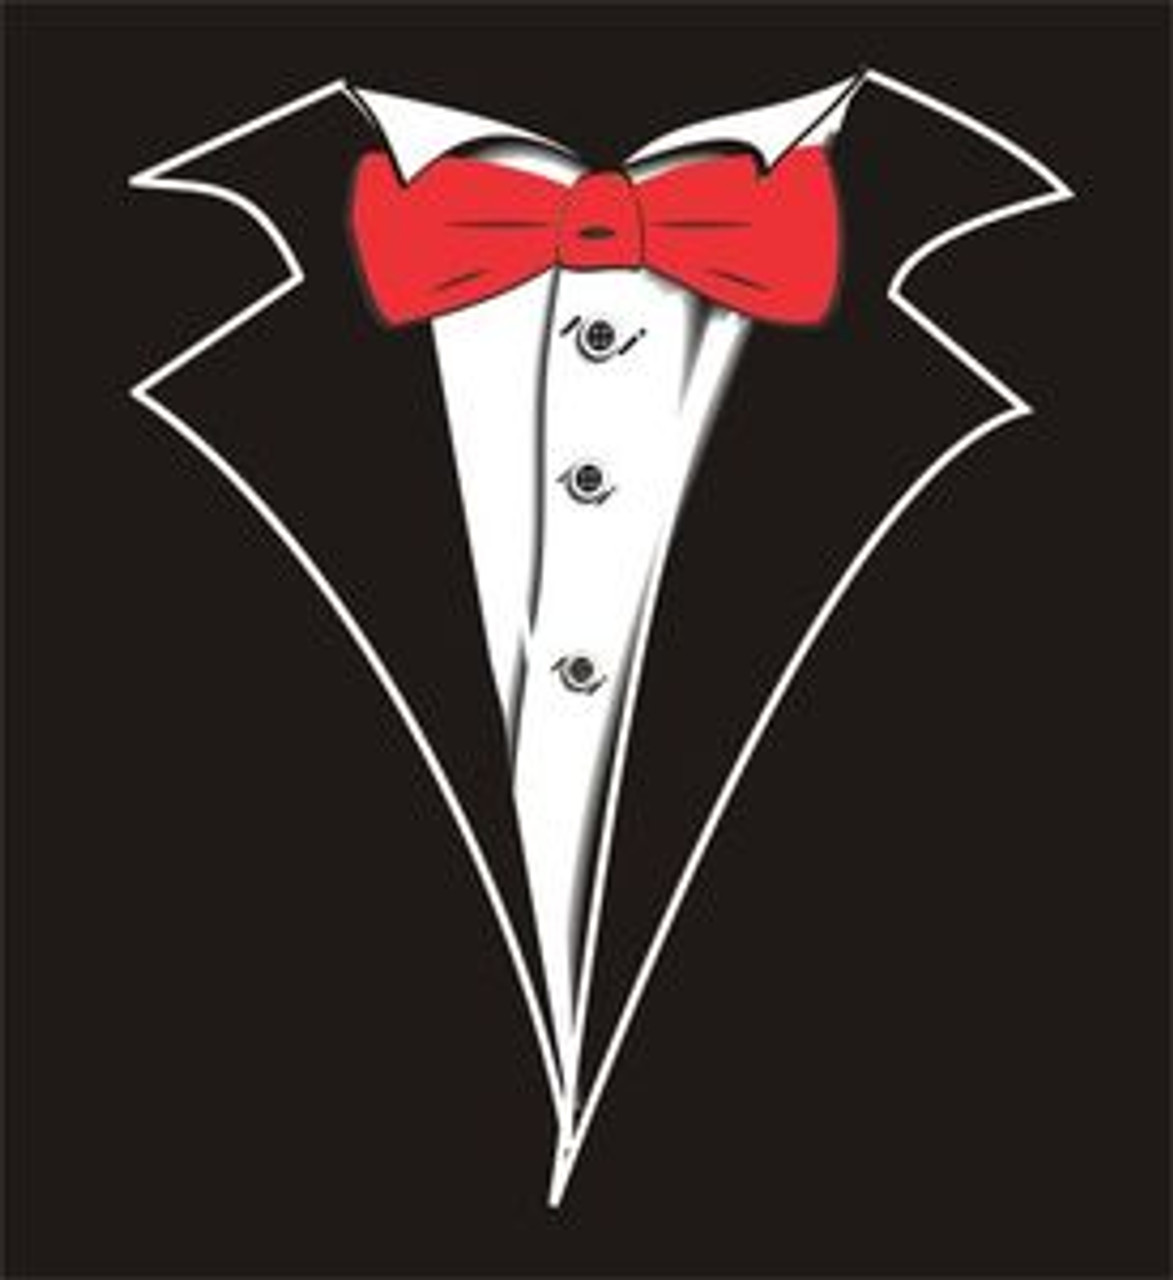 Kids Tuxedo T Shirt In Black With Red Tie No Carnation Shop Boys